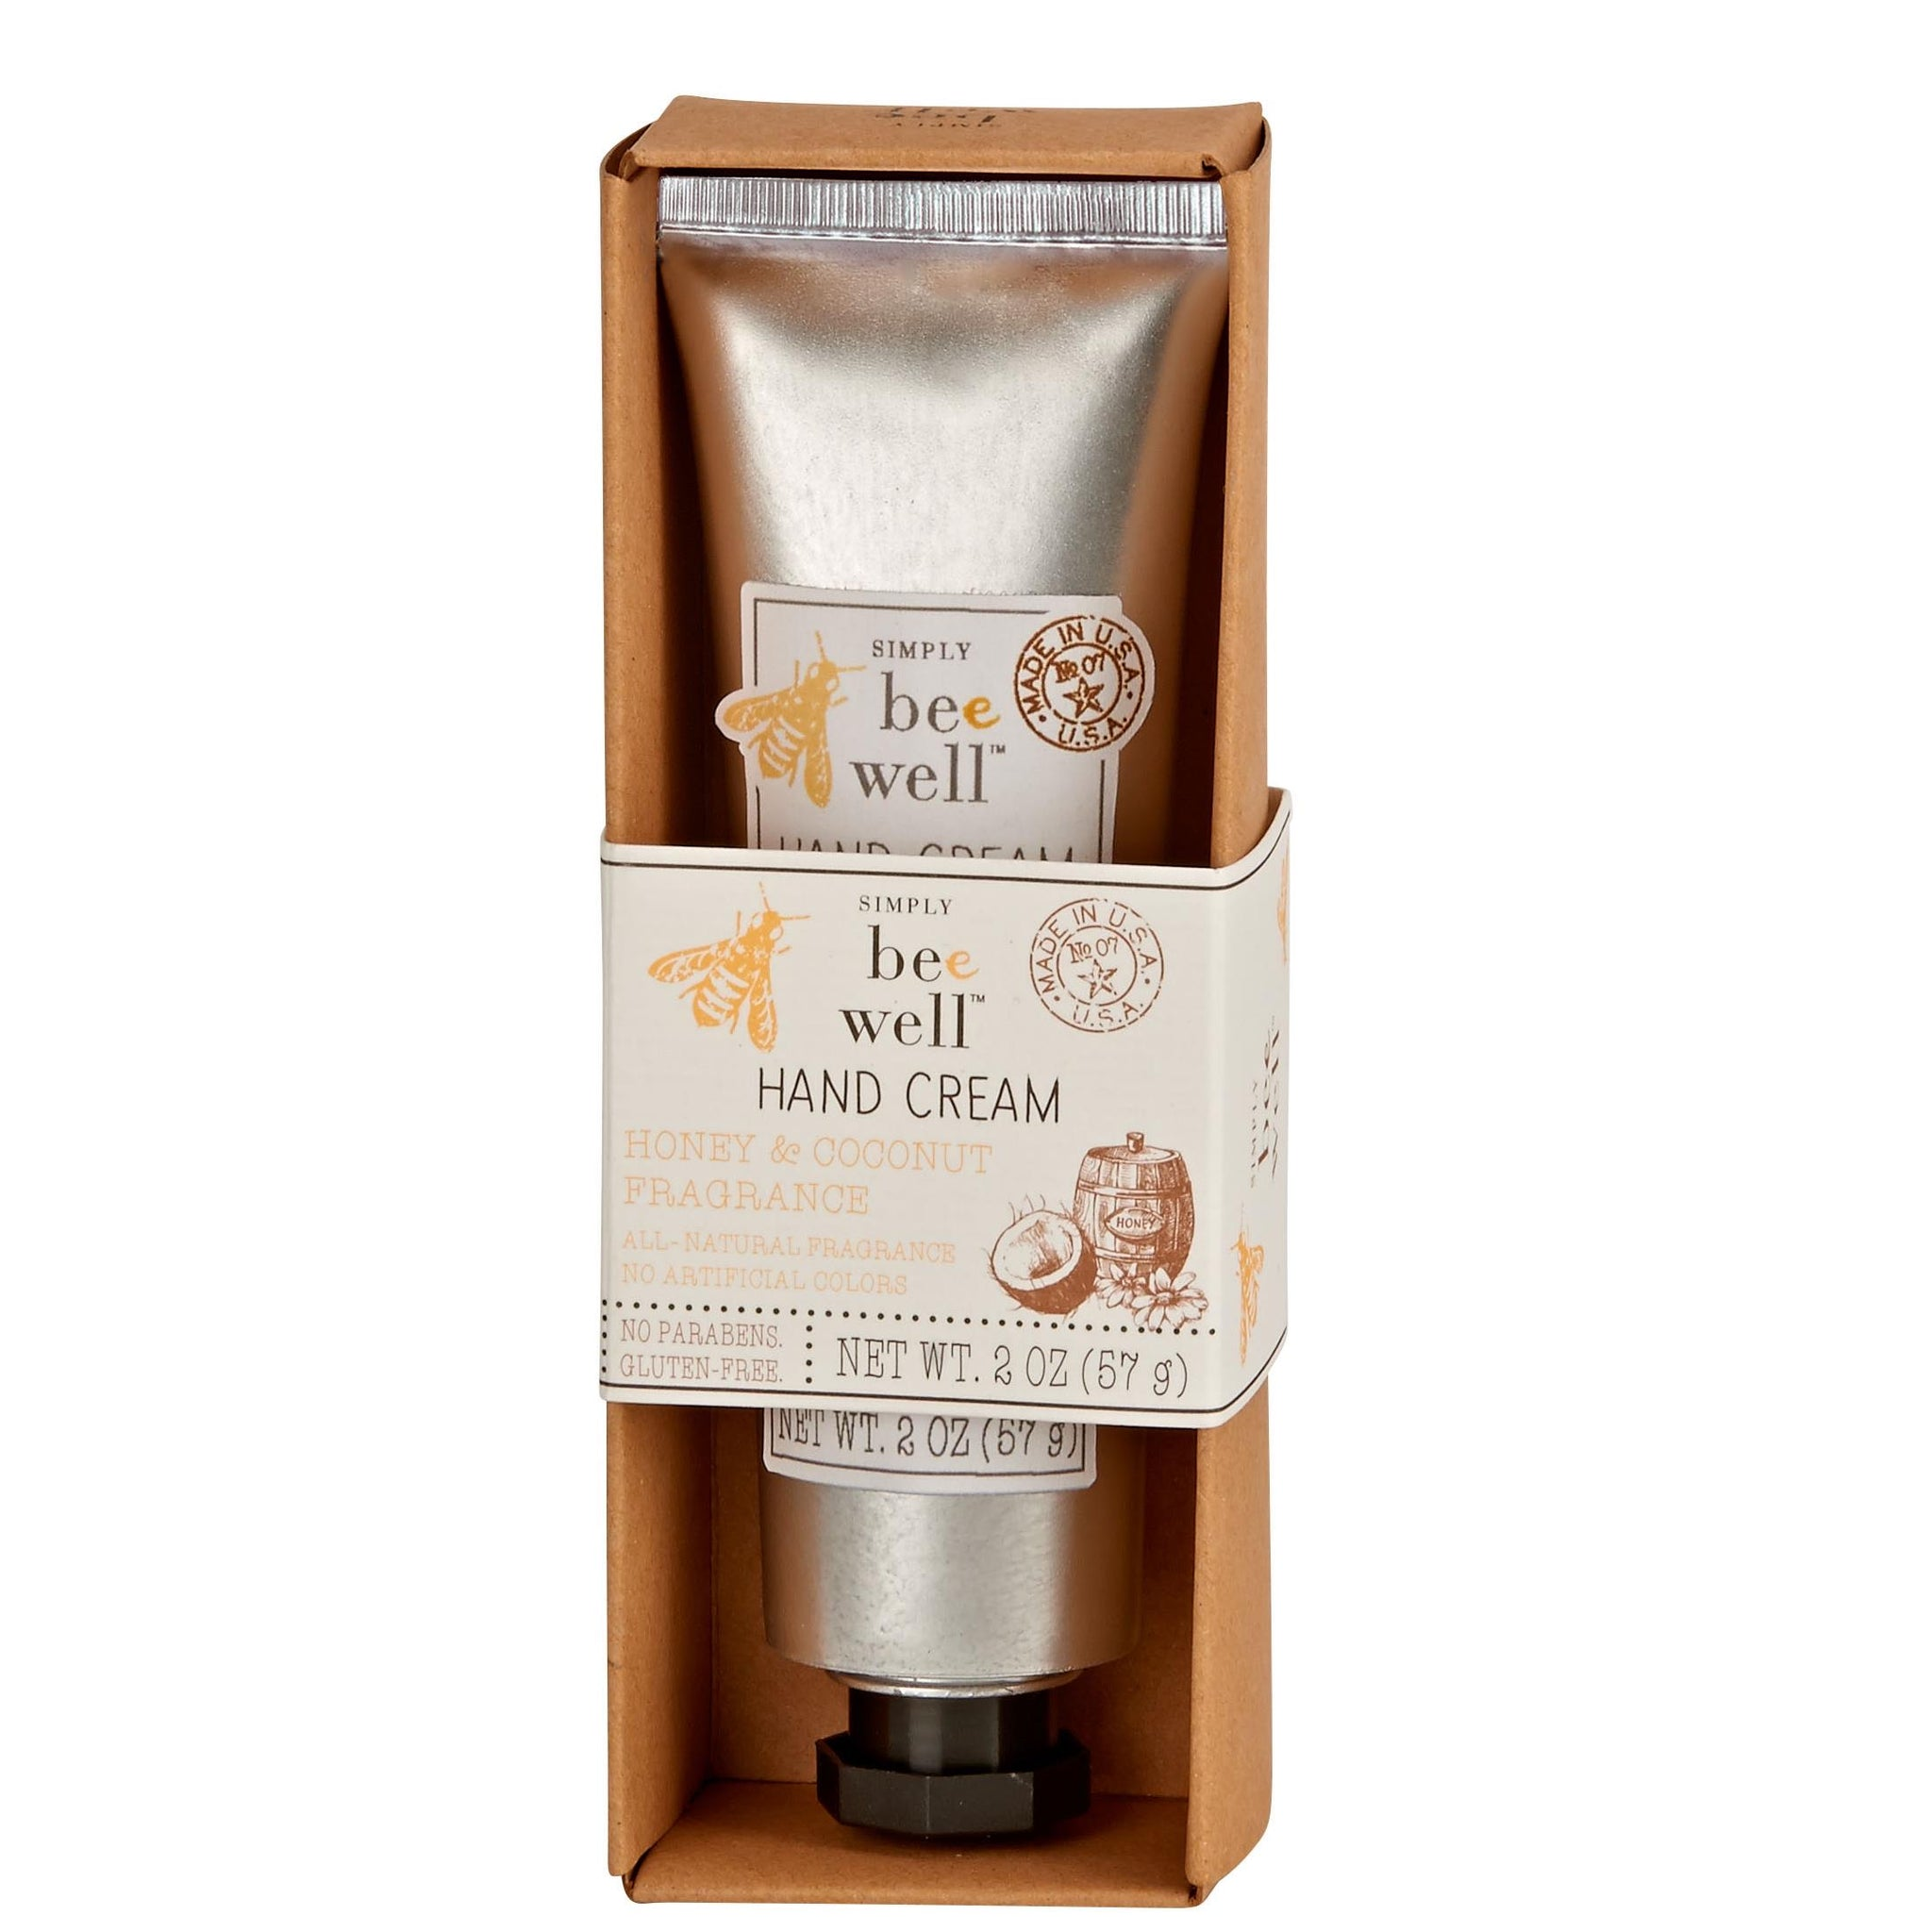 Simply Bee Well Hand Cream: Honey & Coconut